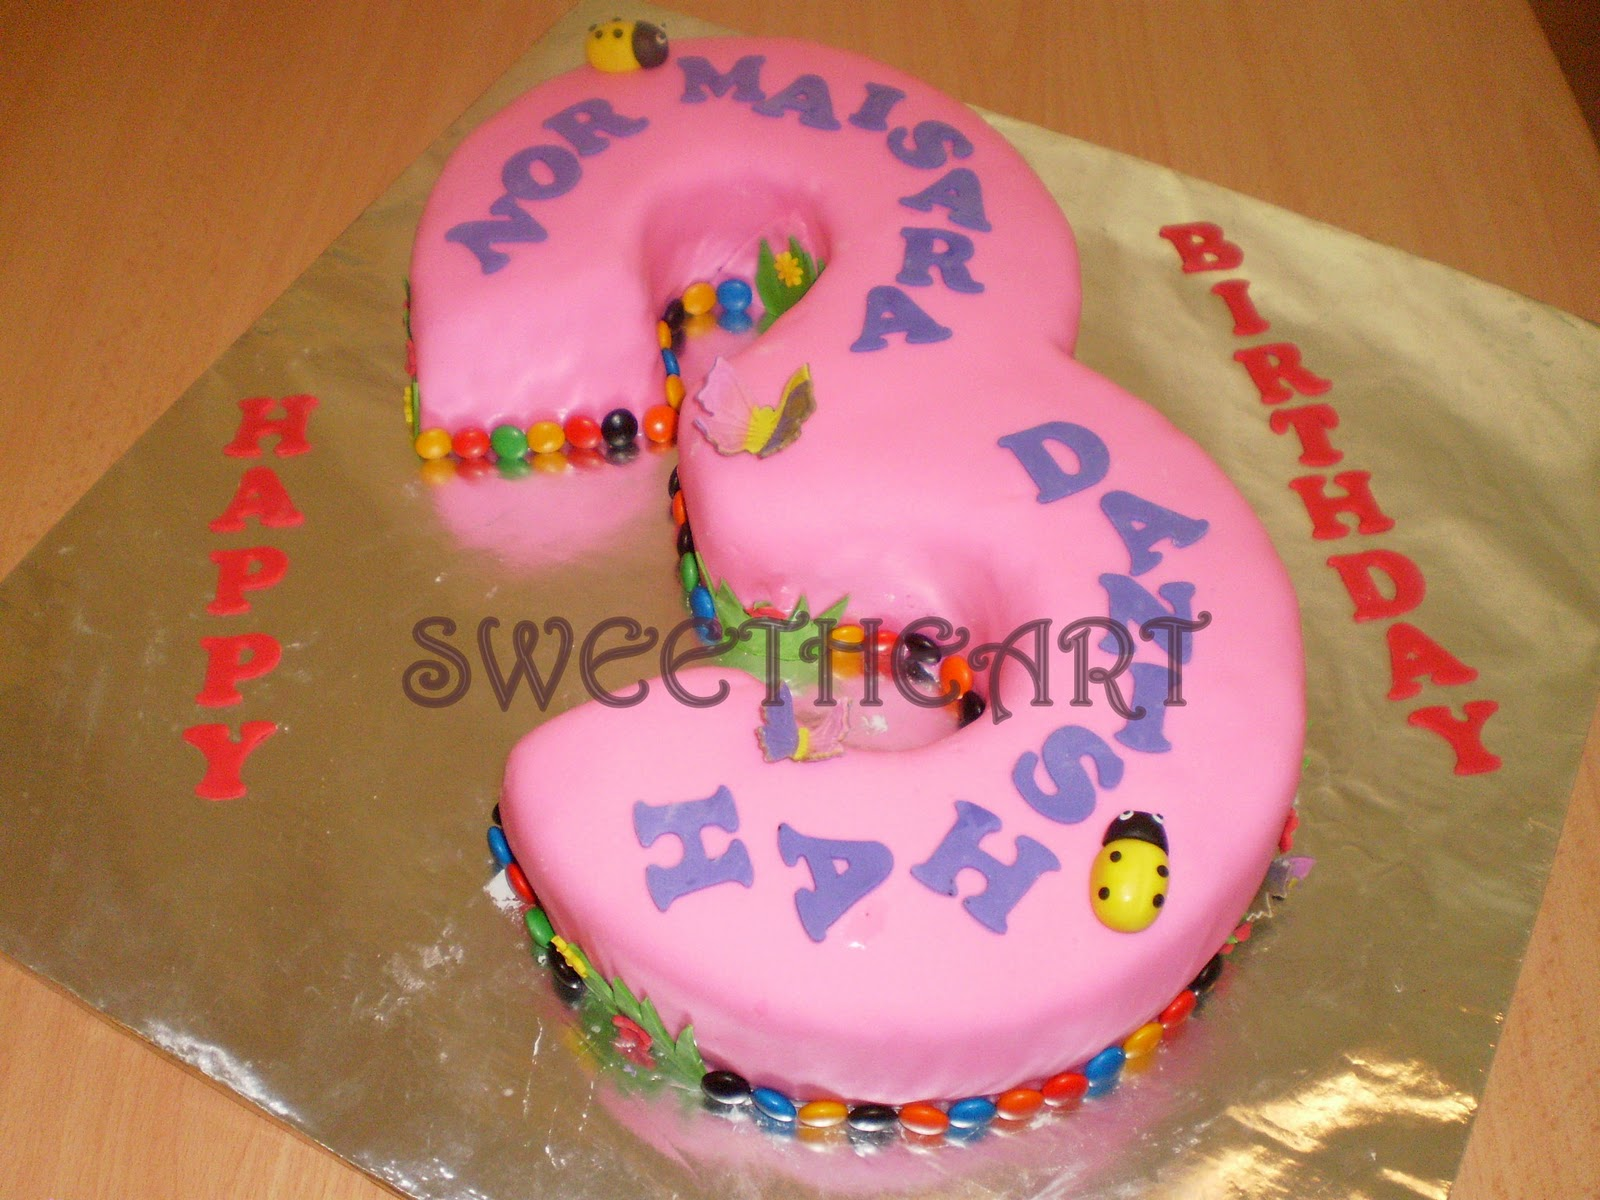 Sweetheart Cake and Cookies: Red Velvet 2D / 3D Number 3